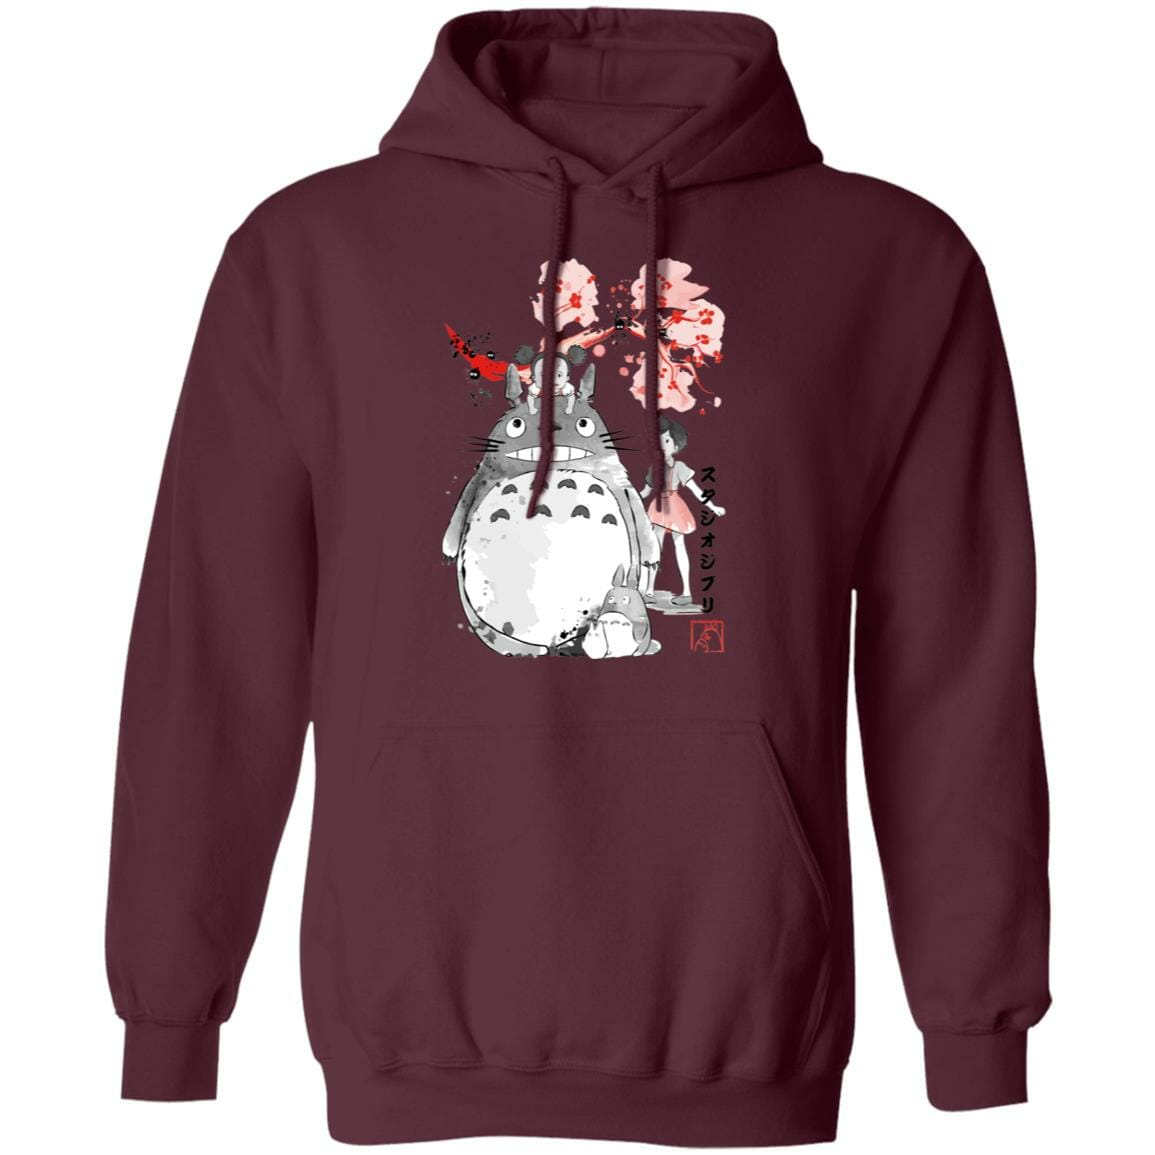 Totoro and the Girls by Sakura Flower Hoodie